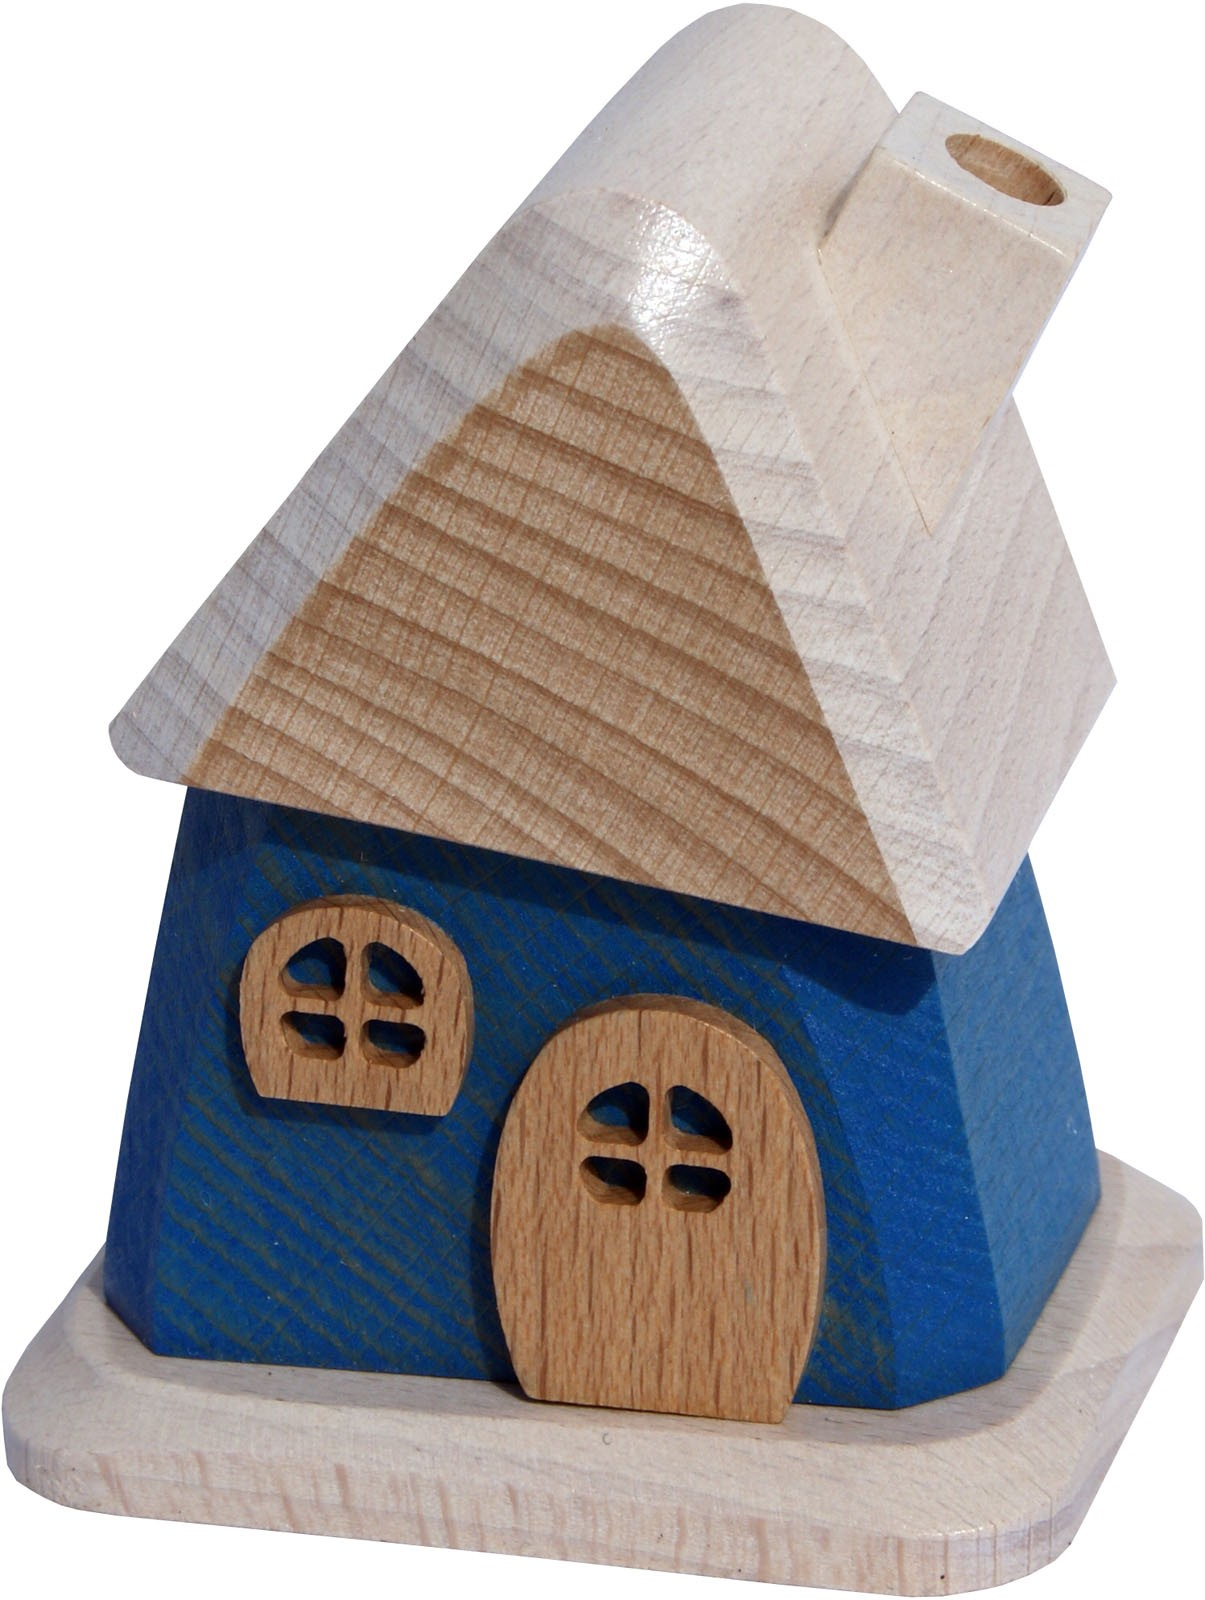 wooden smoking house, blue